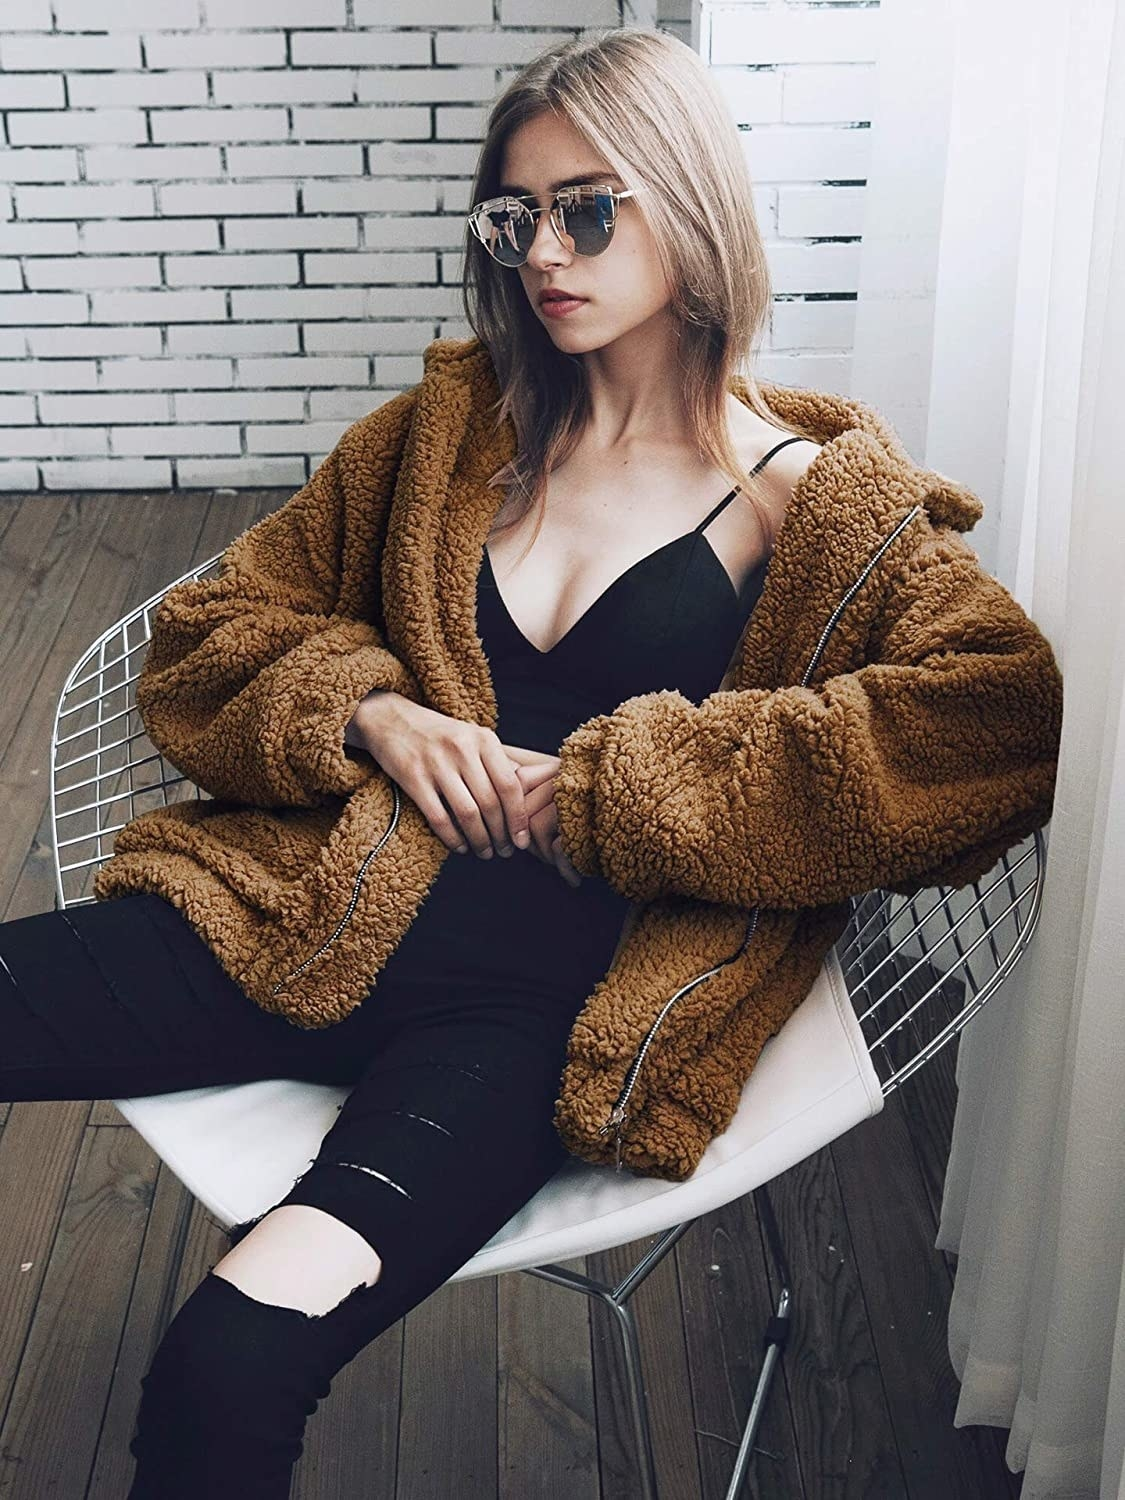 Model wears brown teddy coat with a black crop top and distressed black jeans